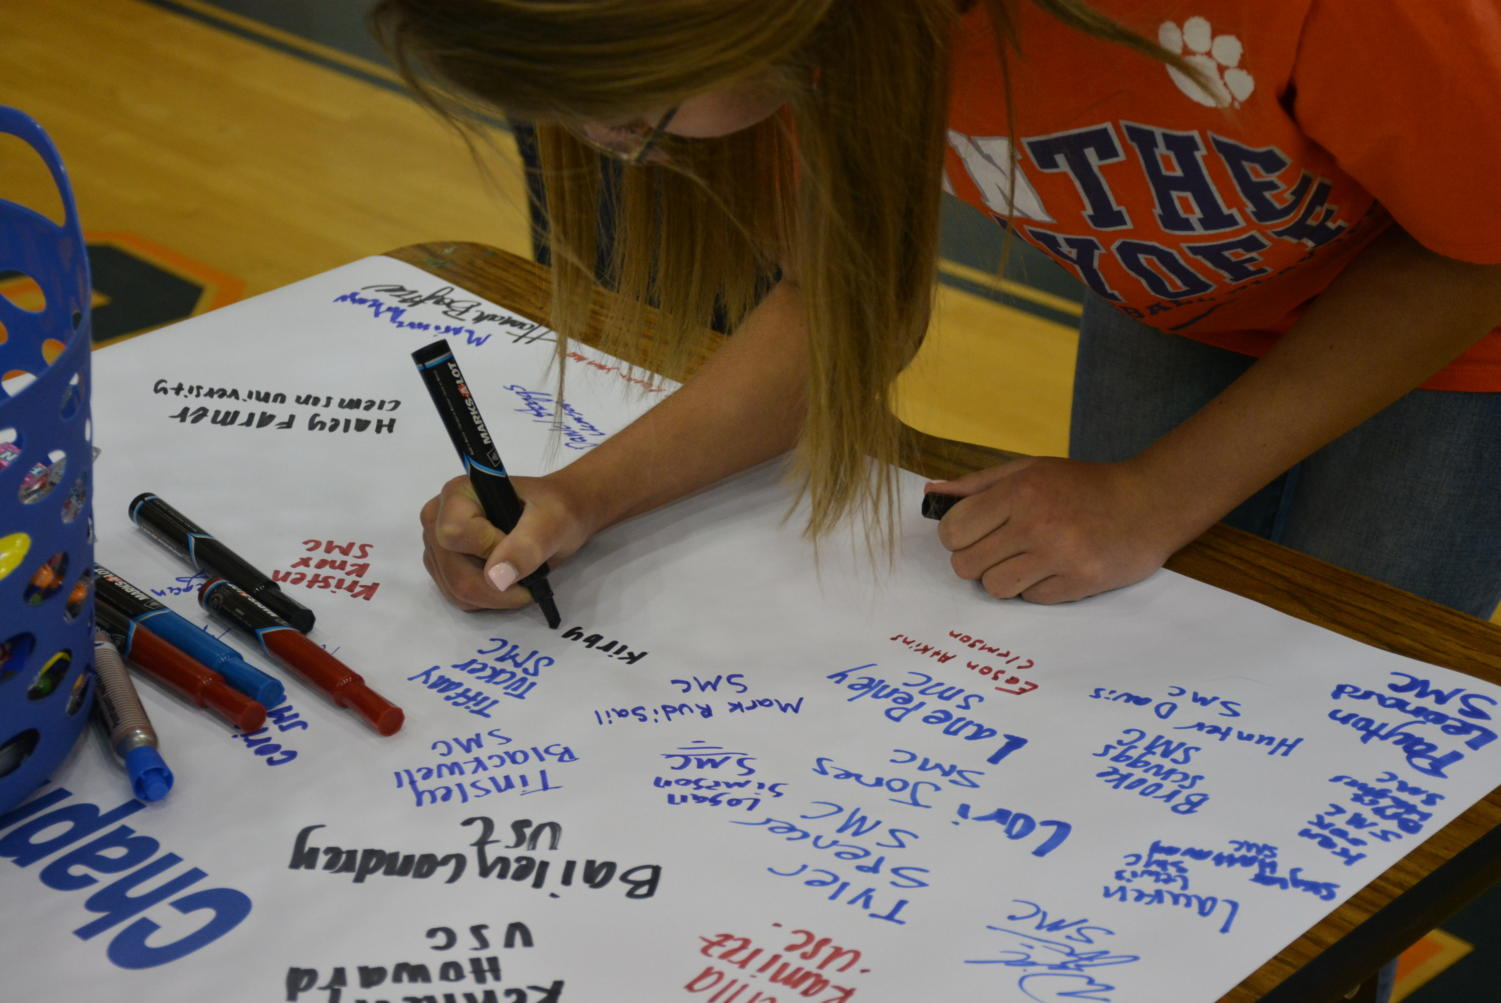 Kirby+Brown+signs+to+Clemson+University.+